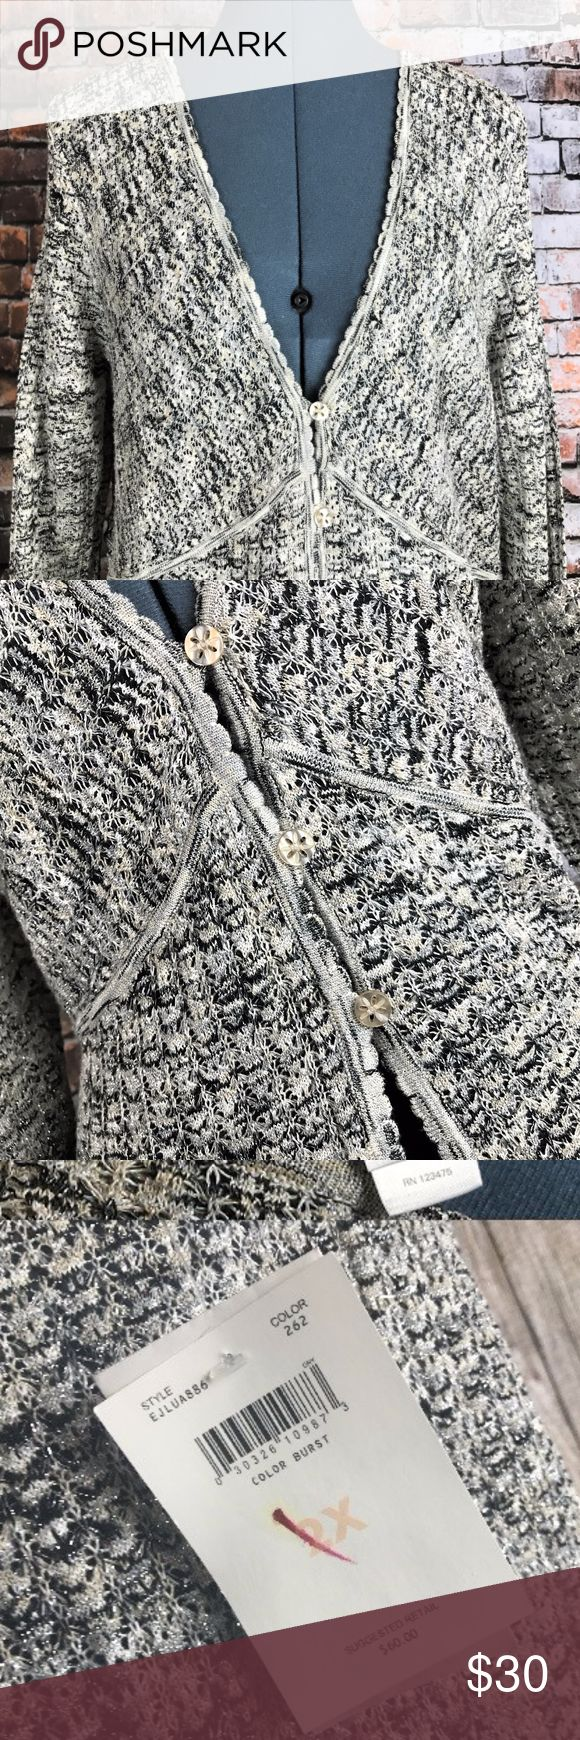 Emma James 2X Sunburst Cardigan Sweater Jacket Emma James 2X Sunburst Cardigan Jacket Silver Metallic White Black Gold, new with tag. Emma James Womens 2X Sunburst Sweater Cardigan Jacket Silver Metallic White Black Gold new with tag.  It is somewhat see-through, extremely lightweight cardigan, button with 3 eyelet buttons on the front.  It did not photograph well, but there is silver metallic threading, gold, white/gray, and black strands.    Measurements:  Chest:  22 inches (armpit to…